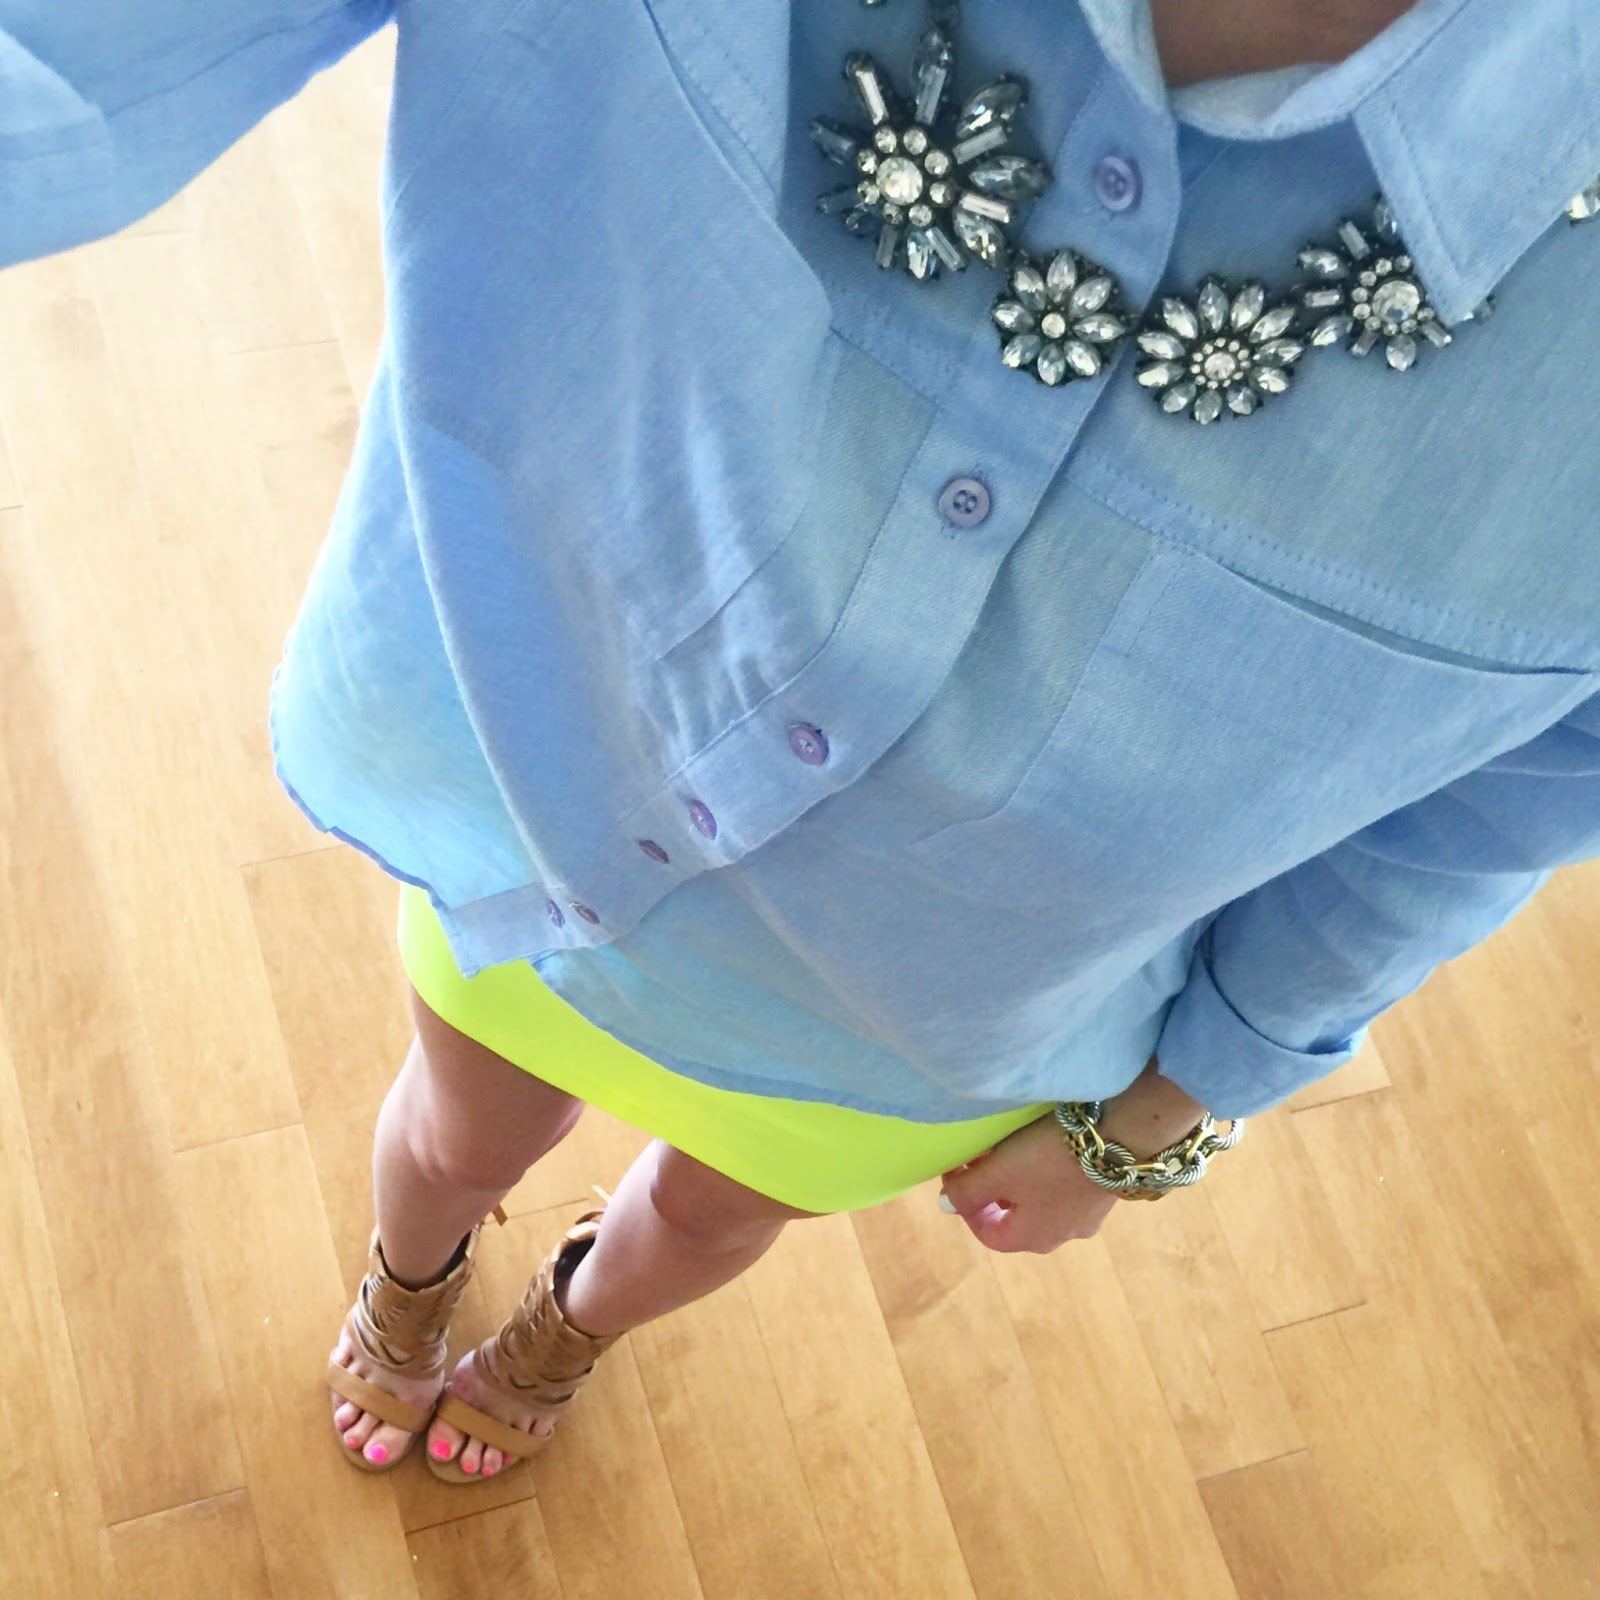 Pair a chambray top with a pop of neon